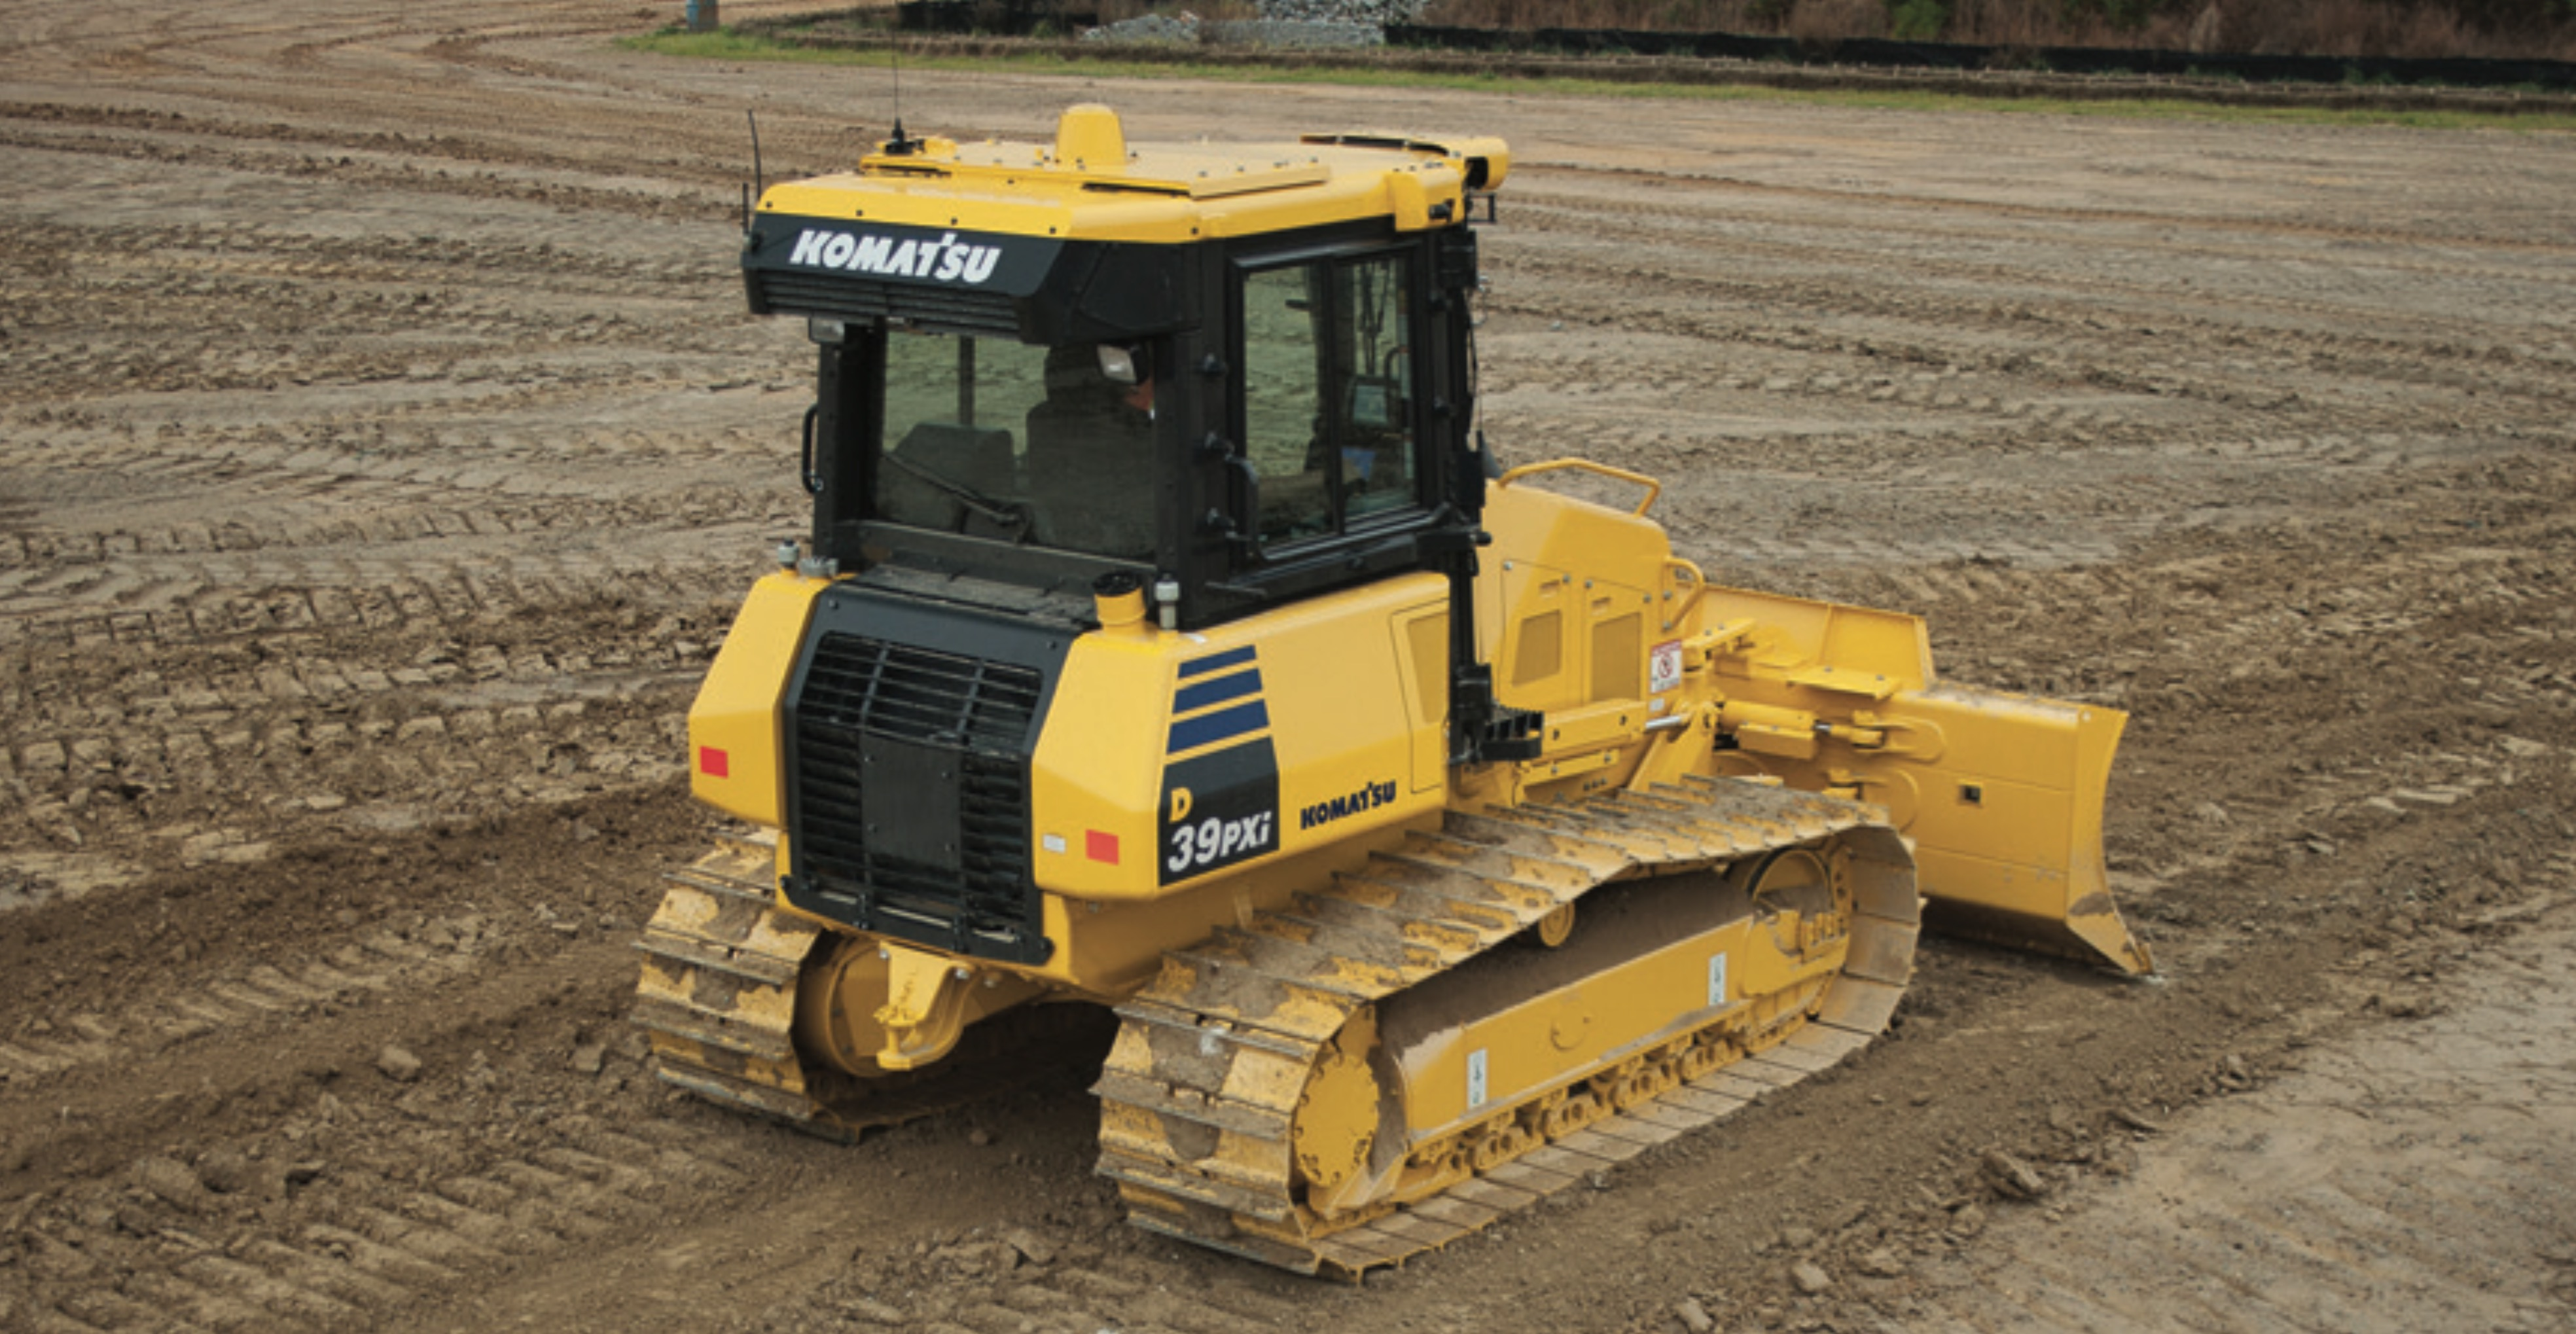 Komatsu D 39 Exi 23 Interim Tier 4 Specifications Technical Data D41p Wiring Diagrams Undercarriage Type Std 1 System Parallel Link Cab Rops Yes Fops Telematics Available